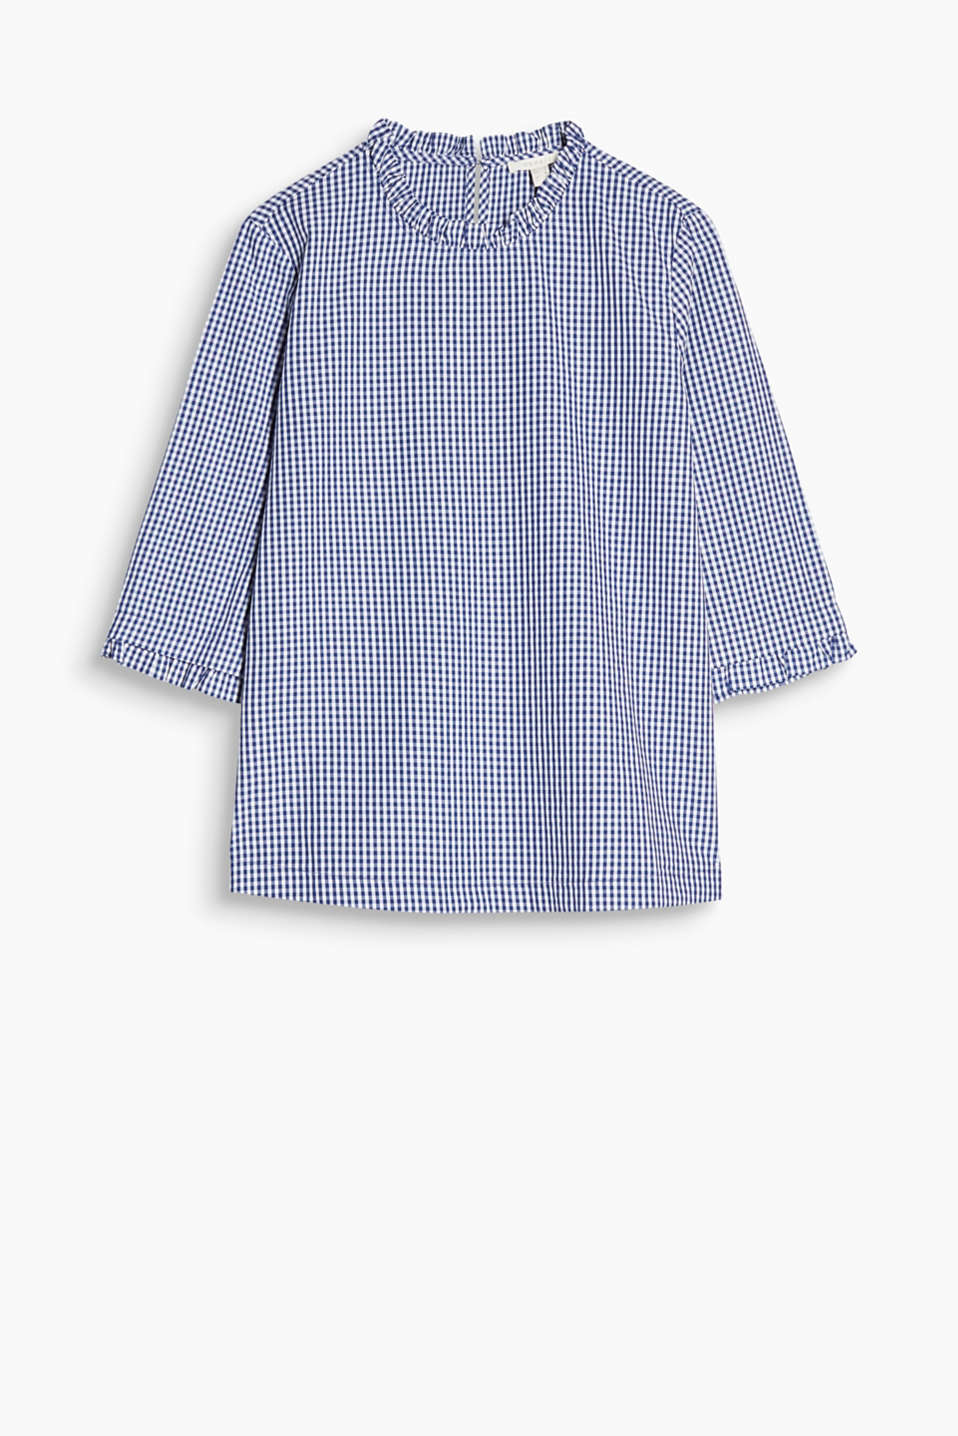 Boxy blouse in a pretty look with a fine frilled trim on the round neckline and sleeve ends